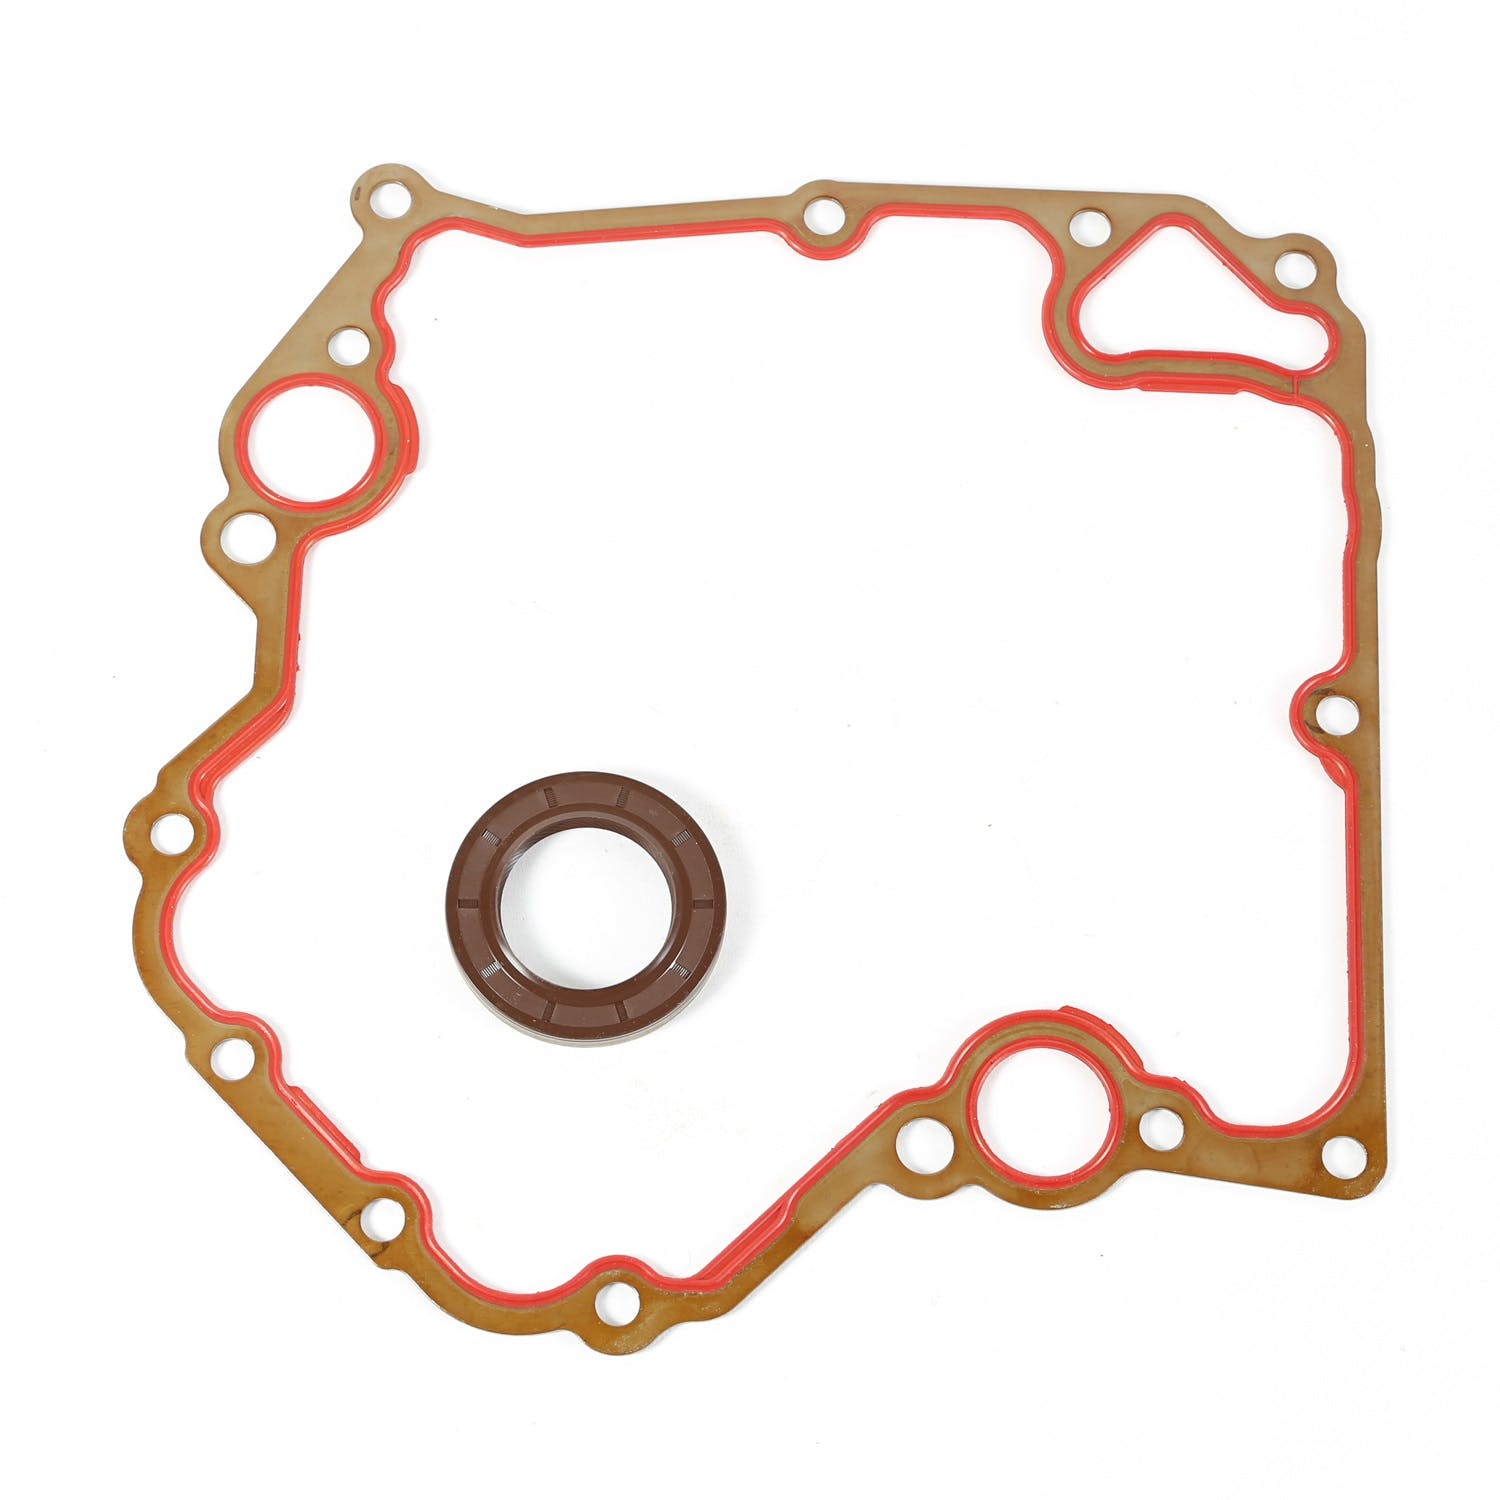 Omix-Ada 17447.21 Valve Cover Gasket Kit for Jeep WK 4.7L